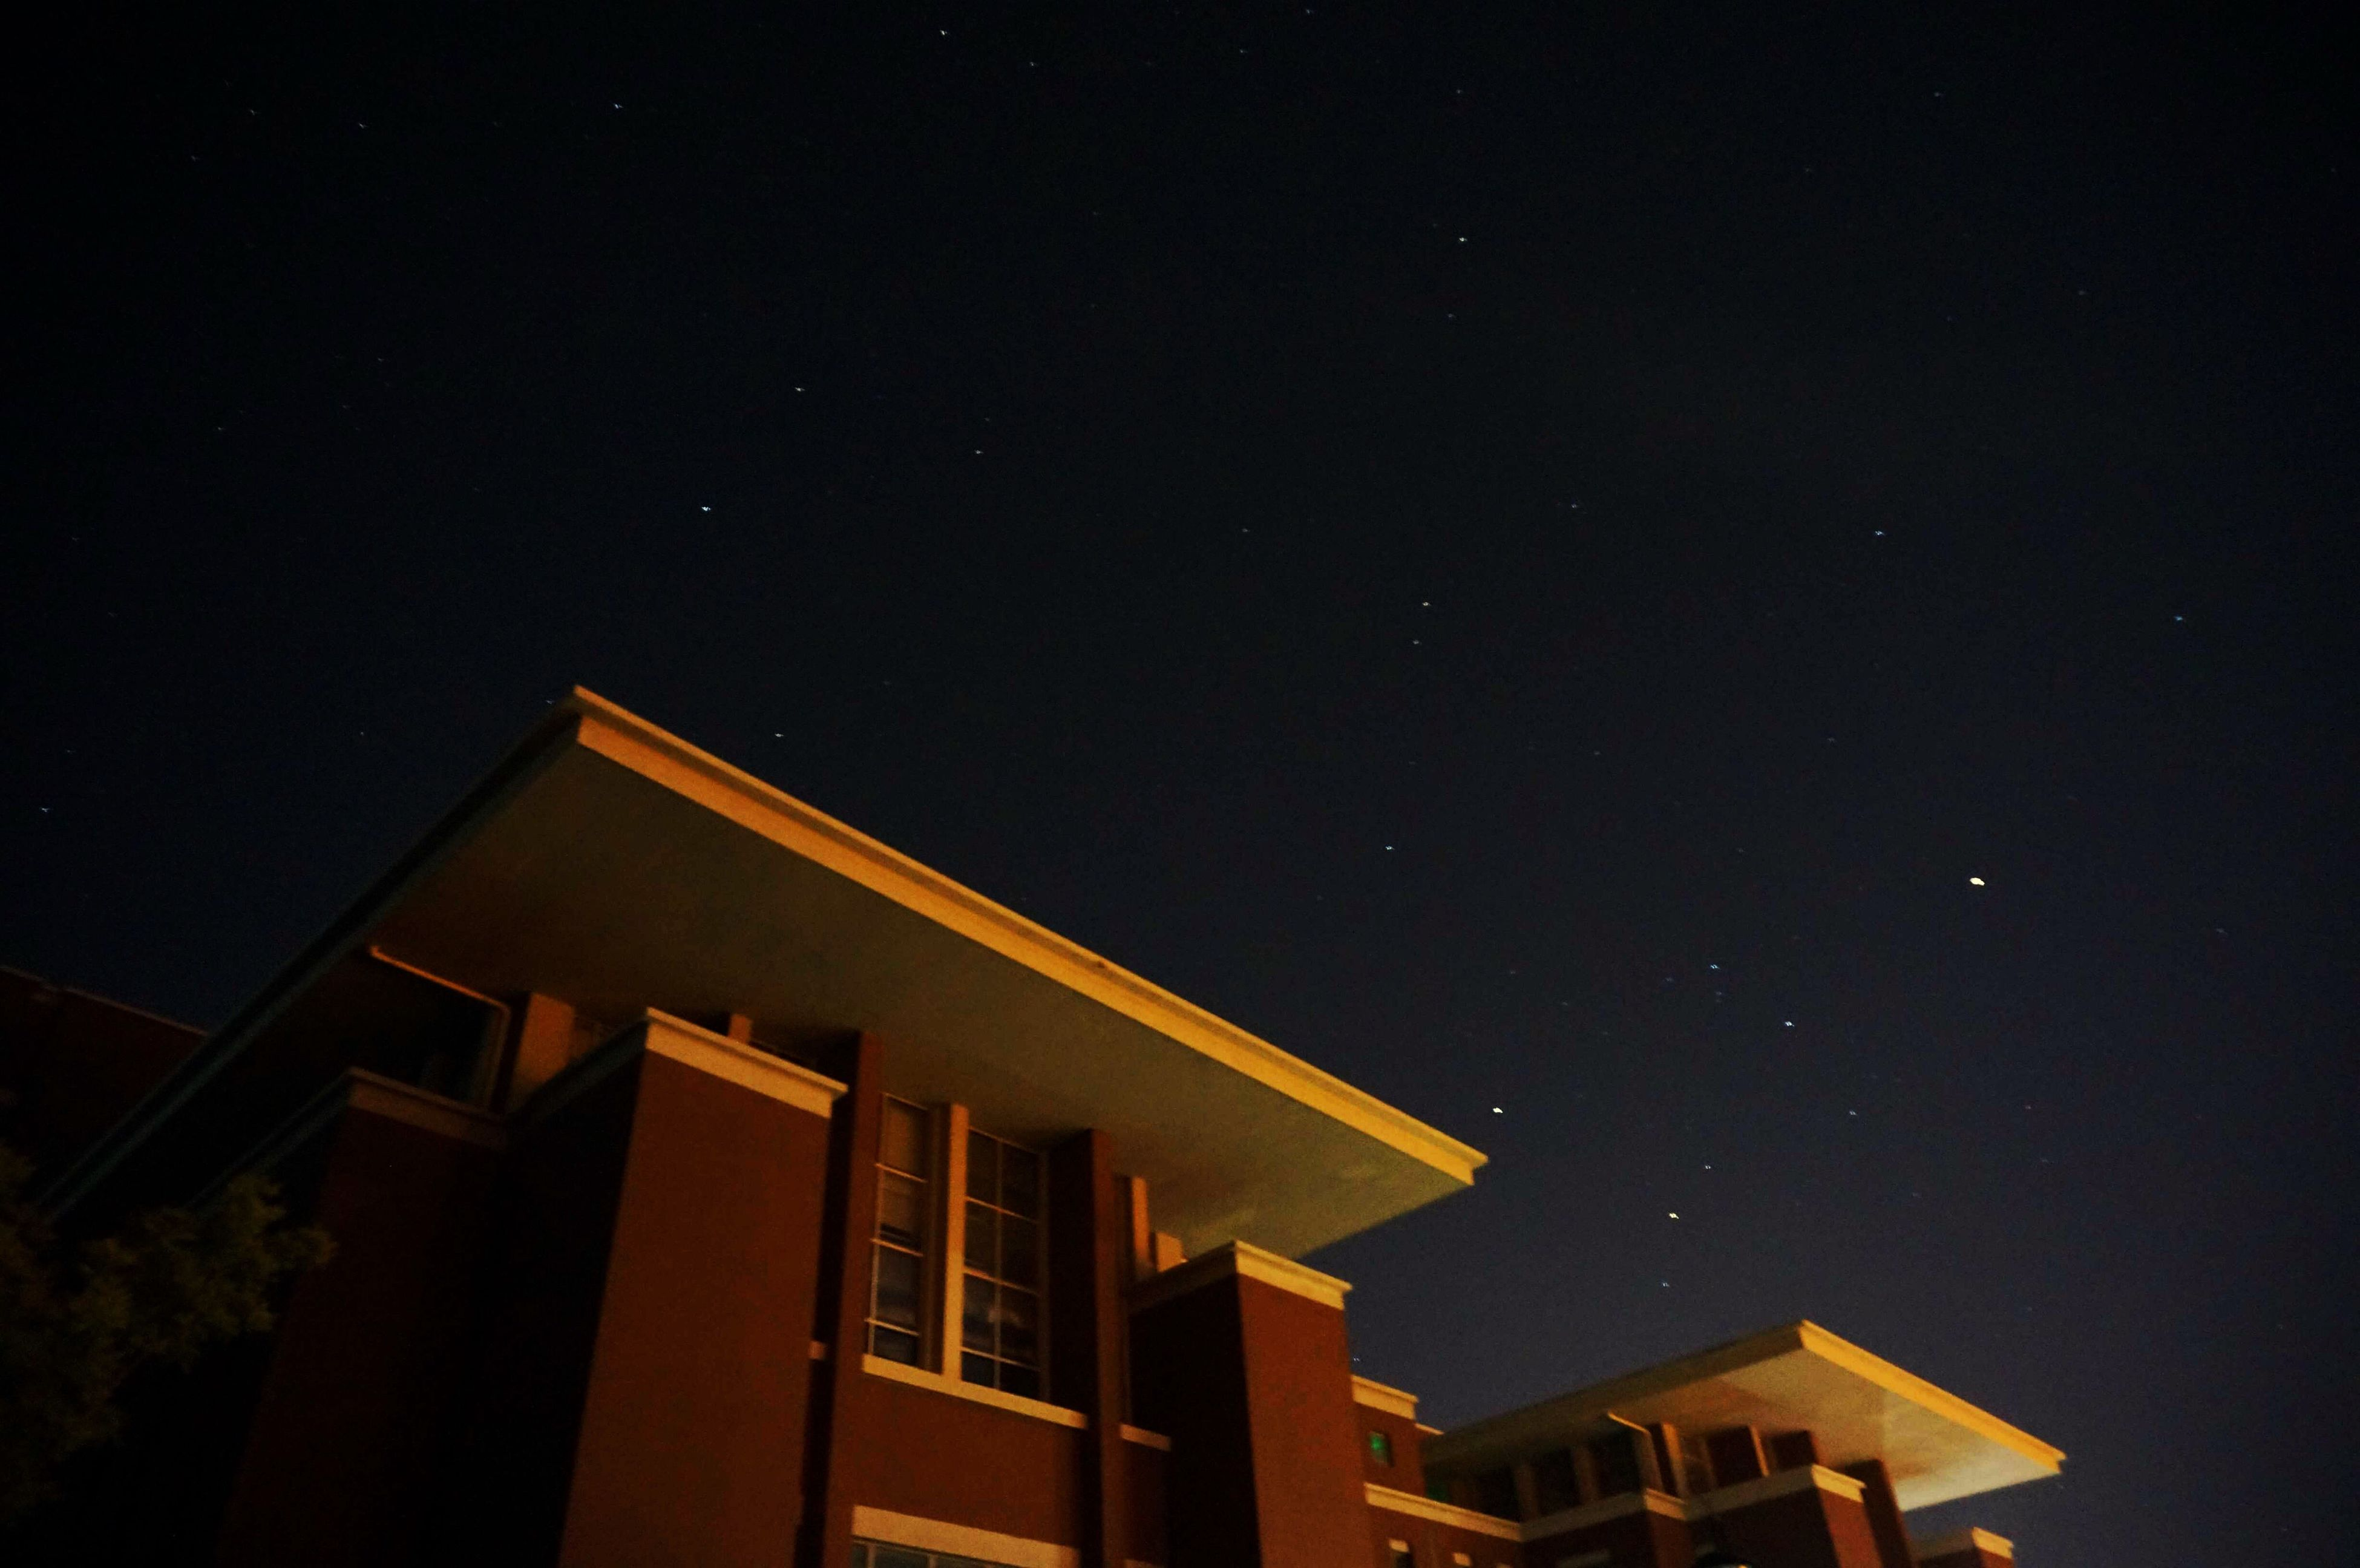 architecture, night, built structure, building exterior, low angle view, copy space, illuminated, clear sky, sky, moon, house, building, high section, dark, residential structure, residential building, outdoors, no people, city, nature